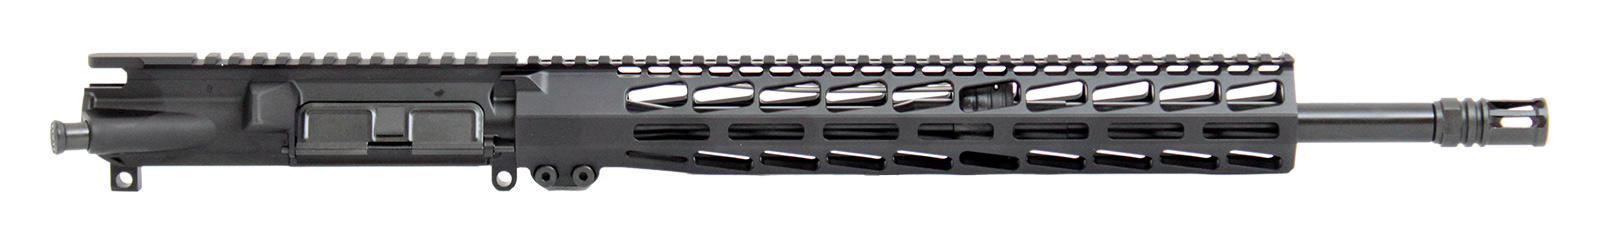 ar15-upper-assembly-16-inch-7-62x39-110-160036